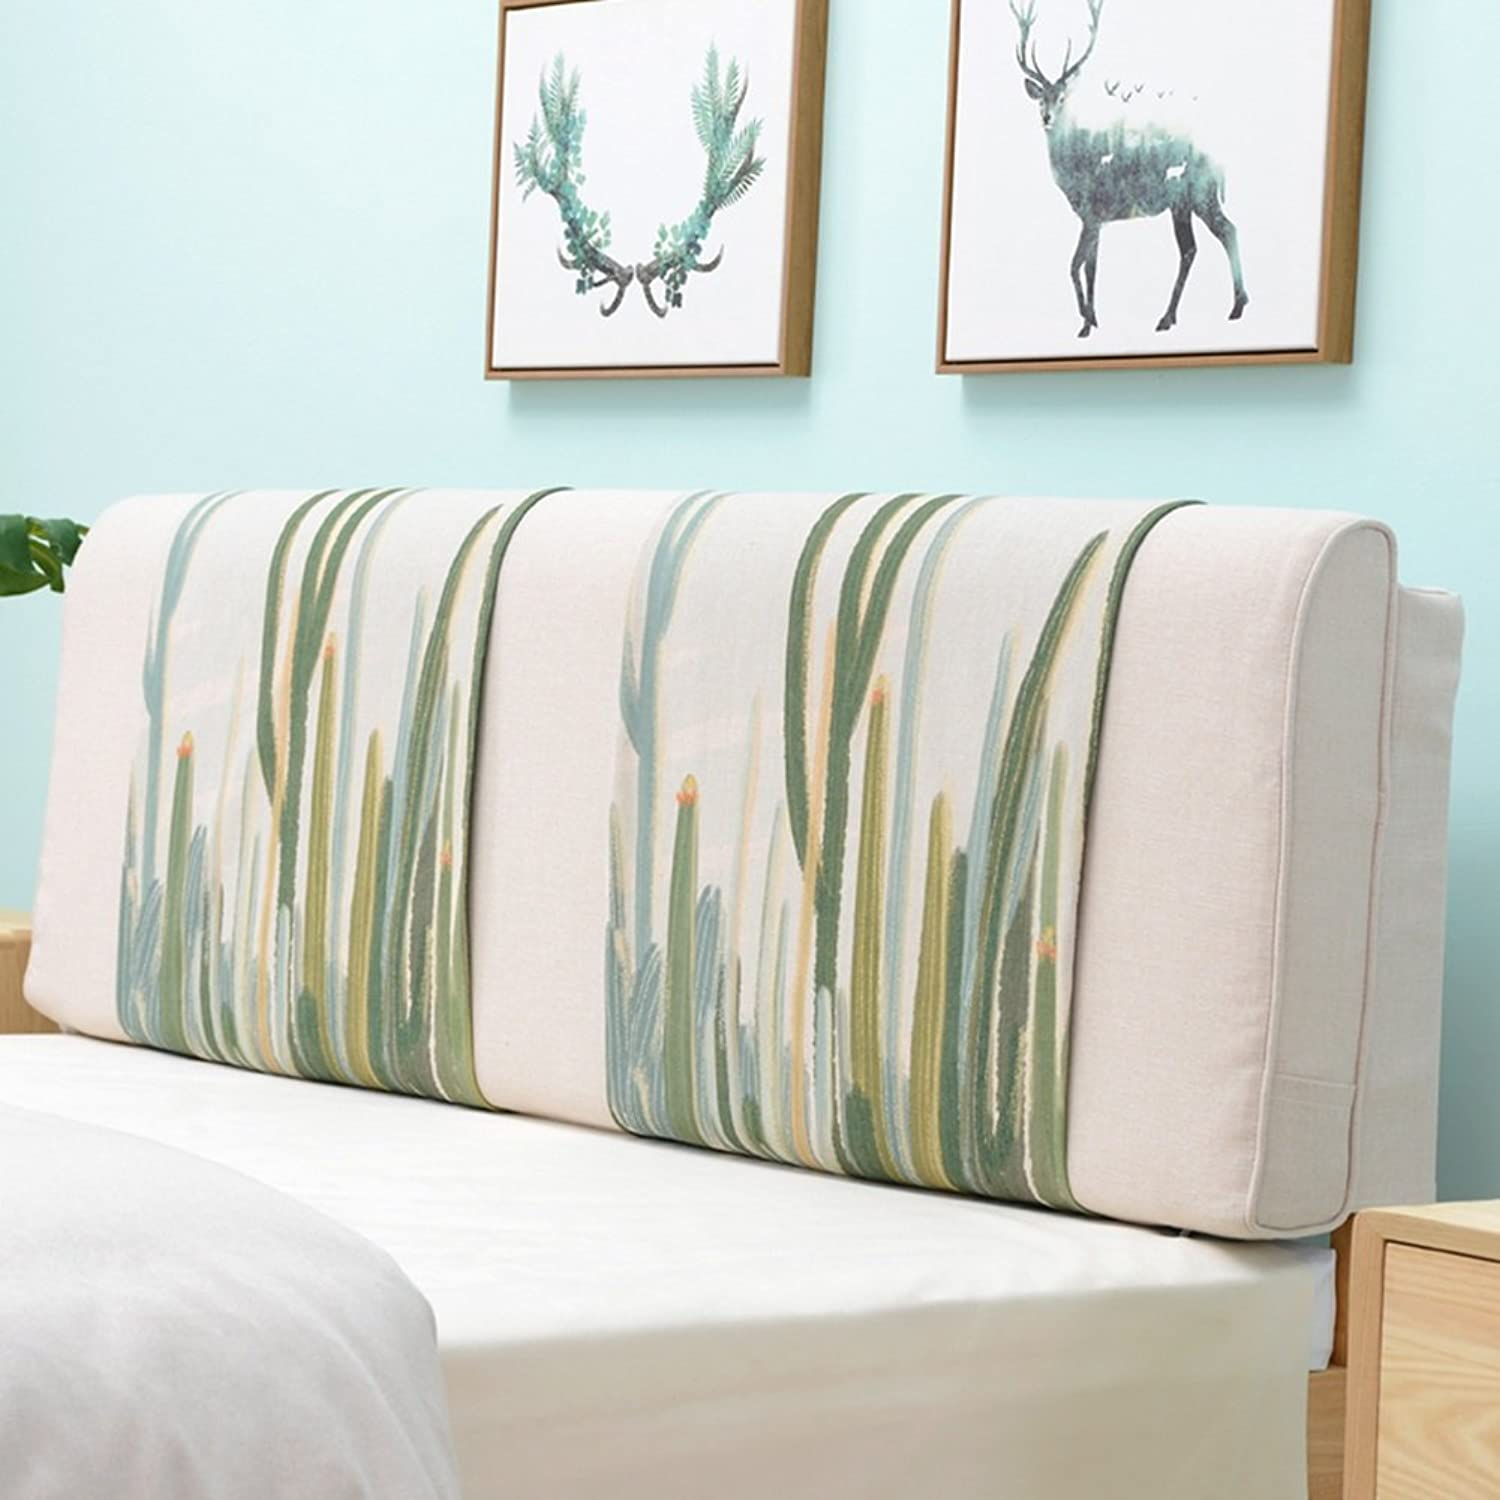 WENZHE Upholstered Fabric Headboard Bedside Cushion Pads Cover Bed Wedges Backrest Waist Pad Flax Bed Cover Large Back Home Bedroom Sofa Soft Case Pillow Multifunction Washable Country Style, There Is Headboard   No Headboard, 4 colors, 11 Choices ( color